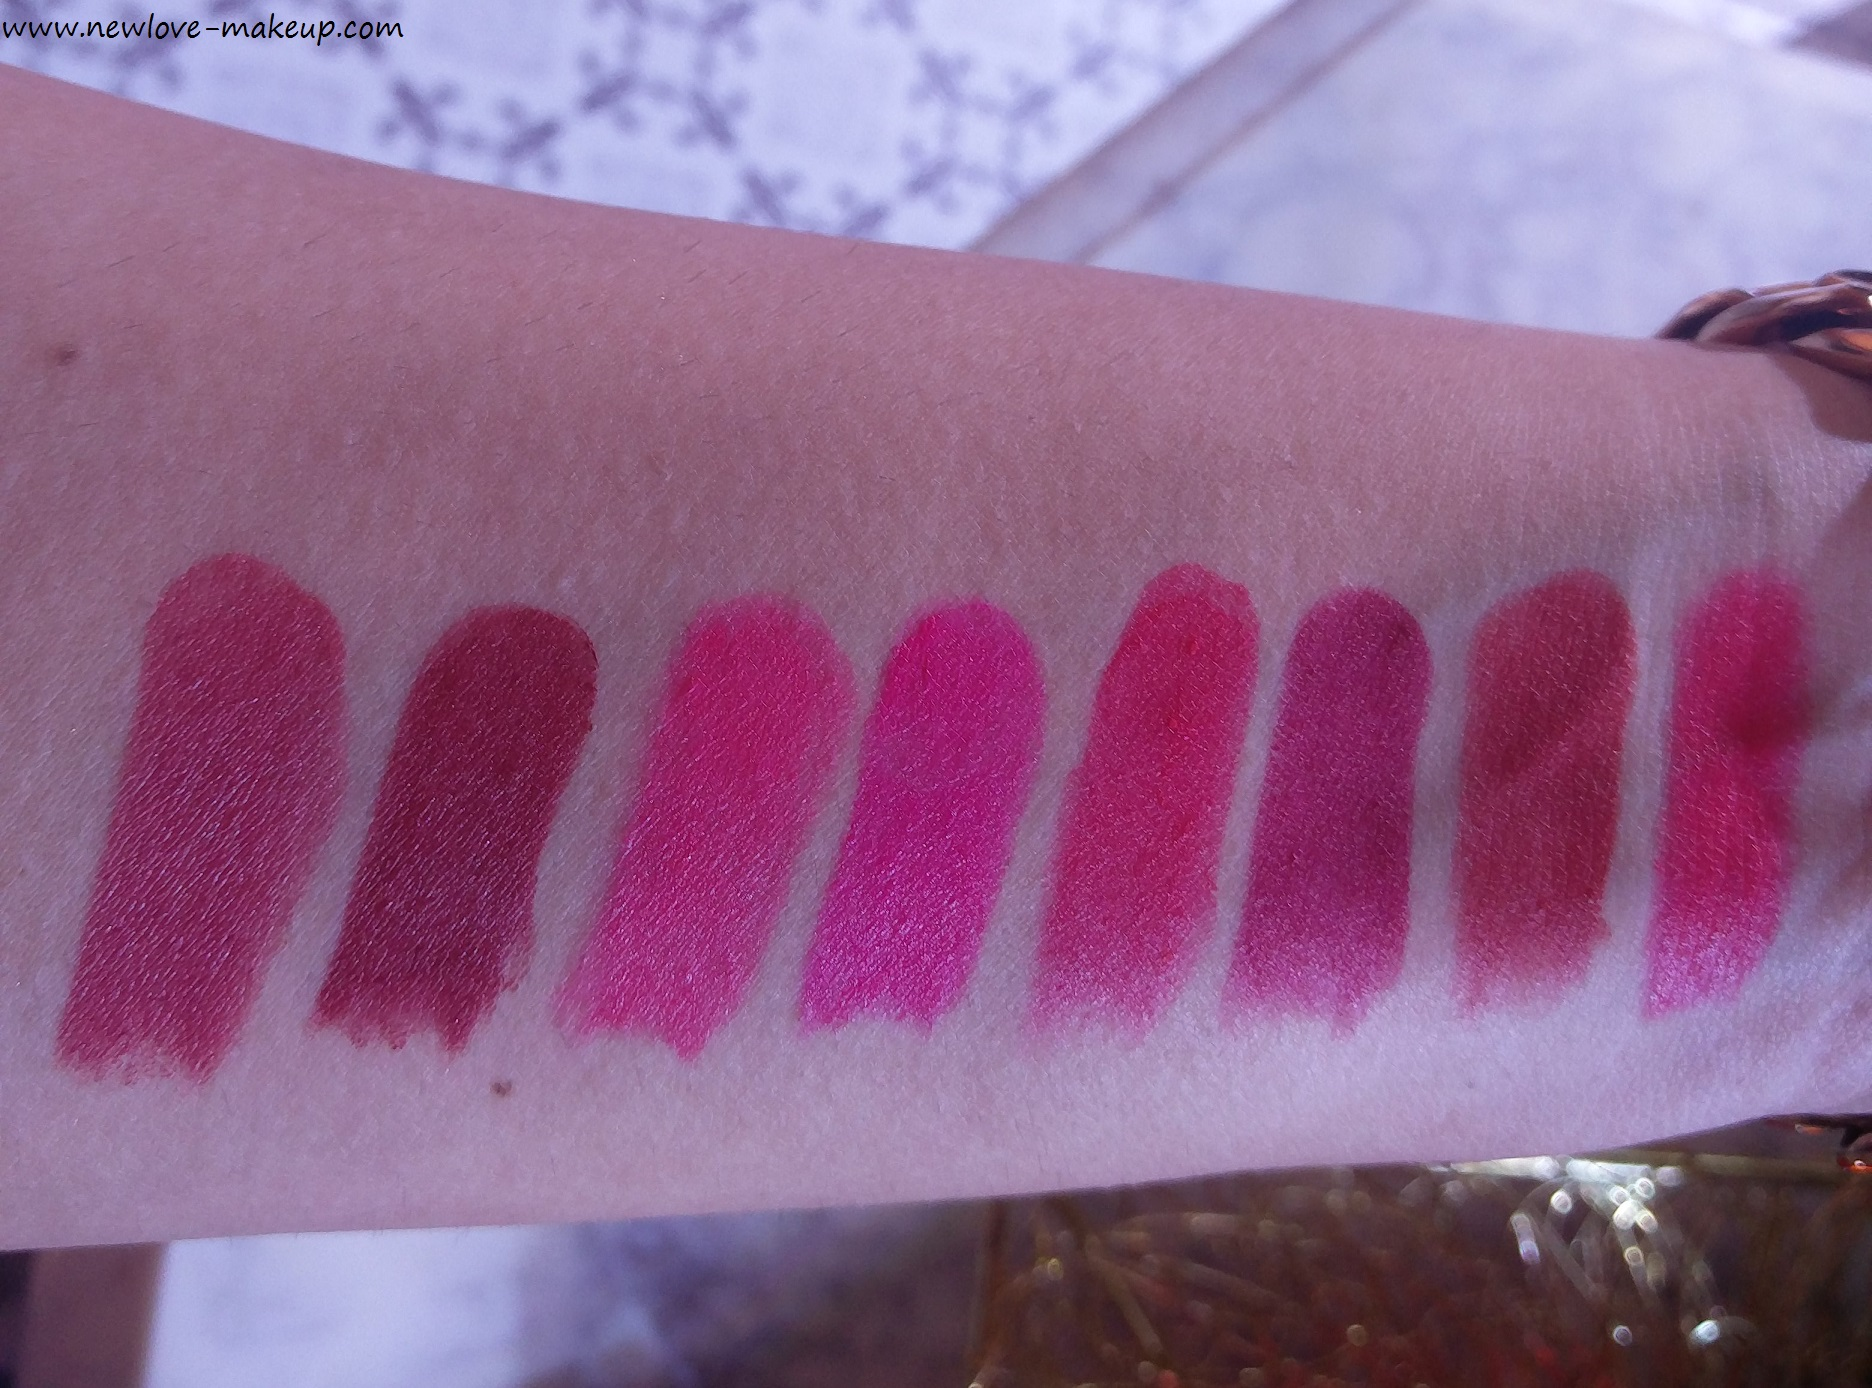 All Swatches - New Lakme Absolute Luxe Matte Lip Colour with Argan Oil